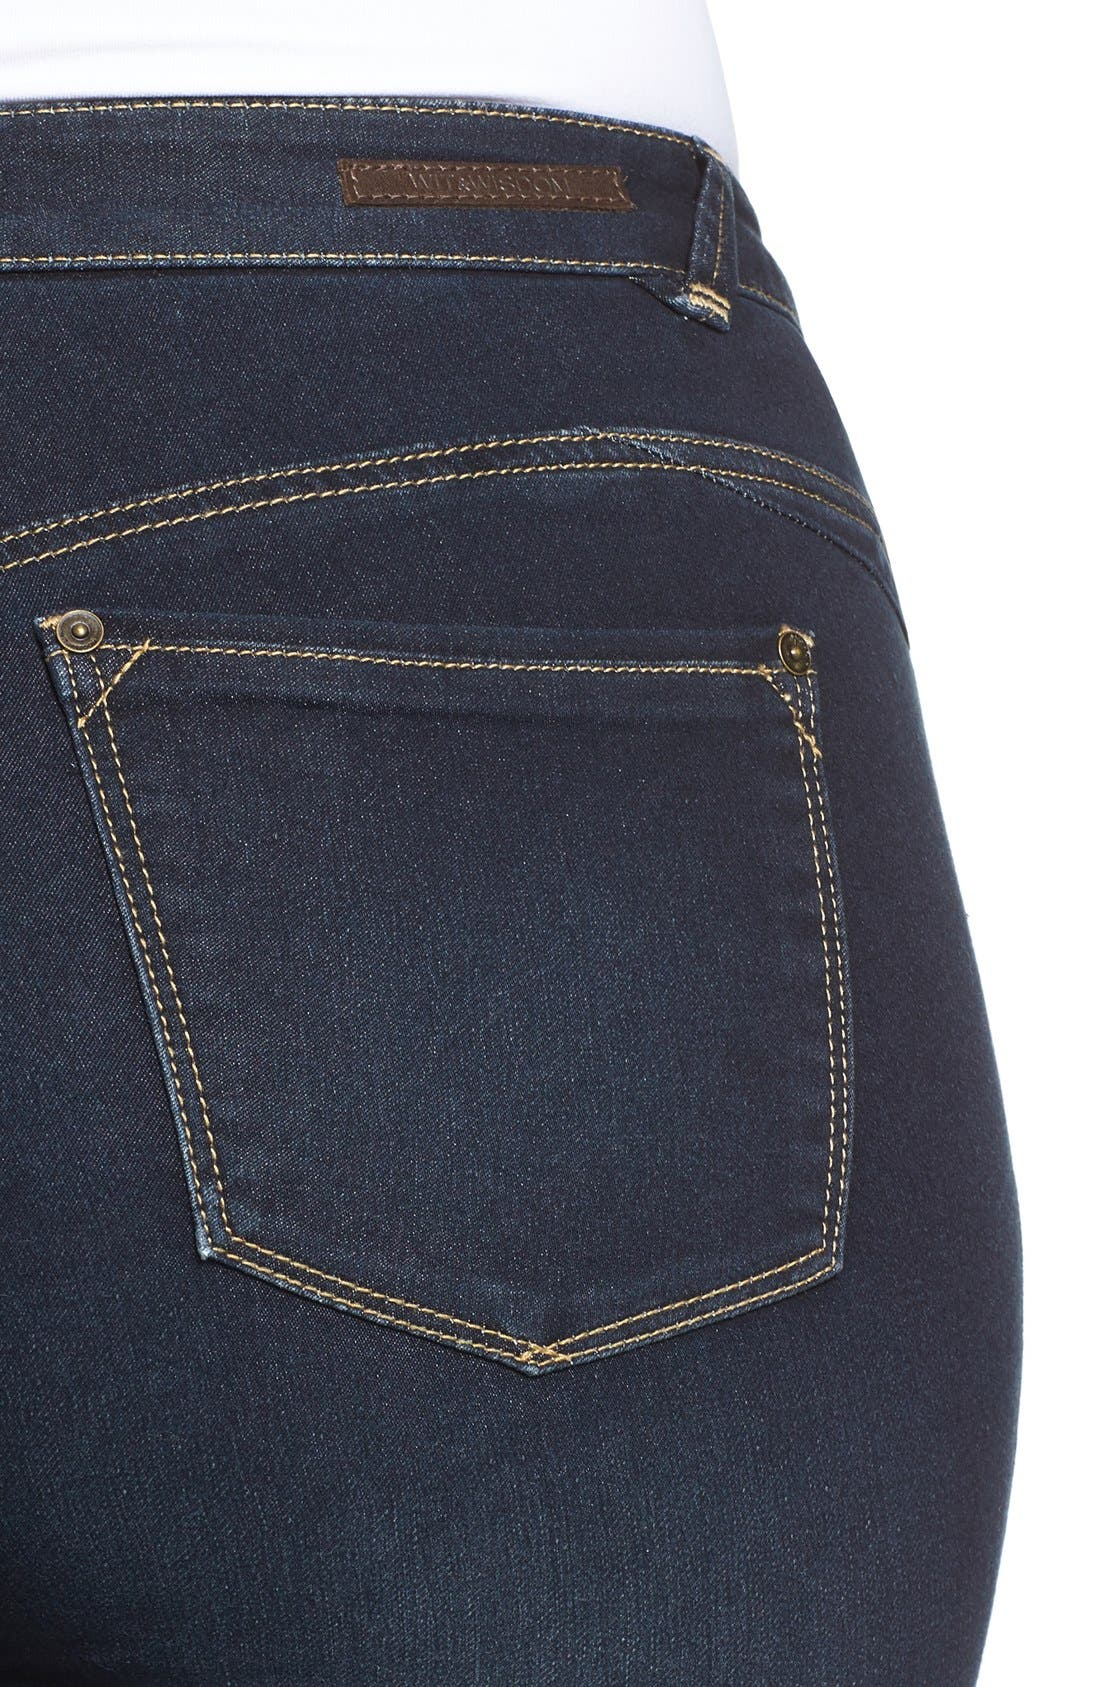 Stretch Skinny Jeans,                             Alternate thumbnail 6, color,